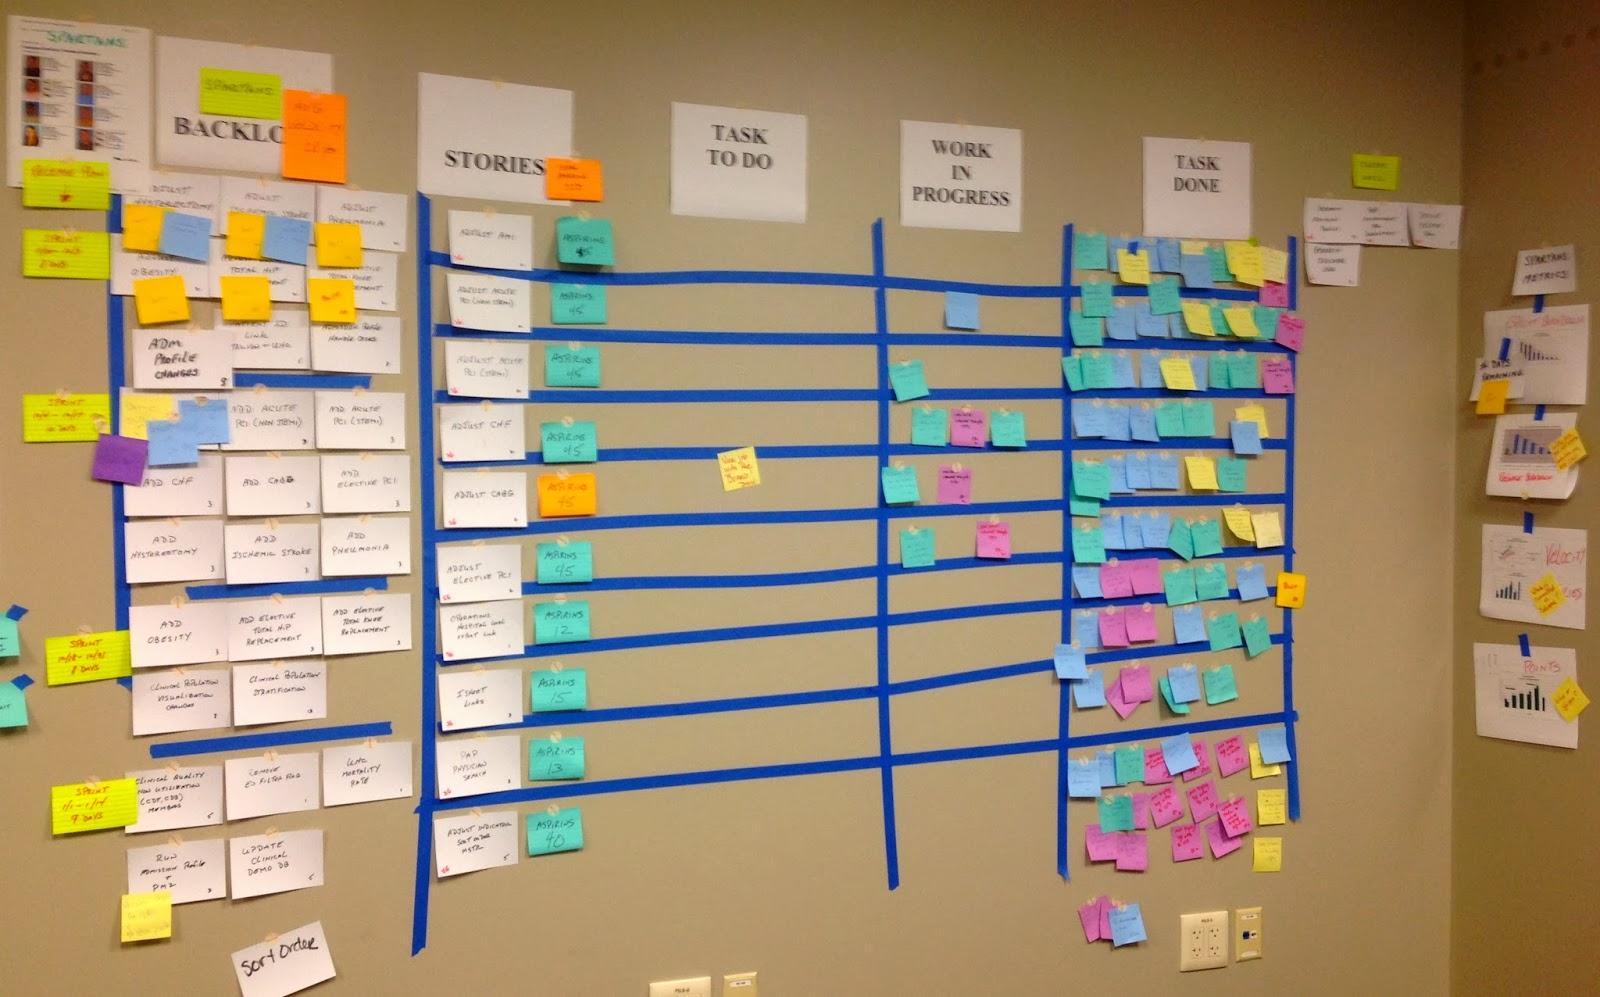 Elements Of An Effective Scrum Task Board